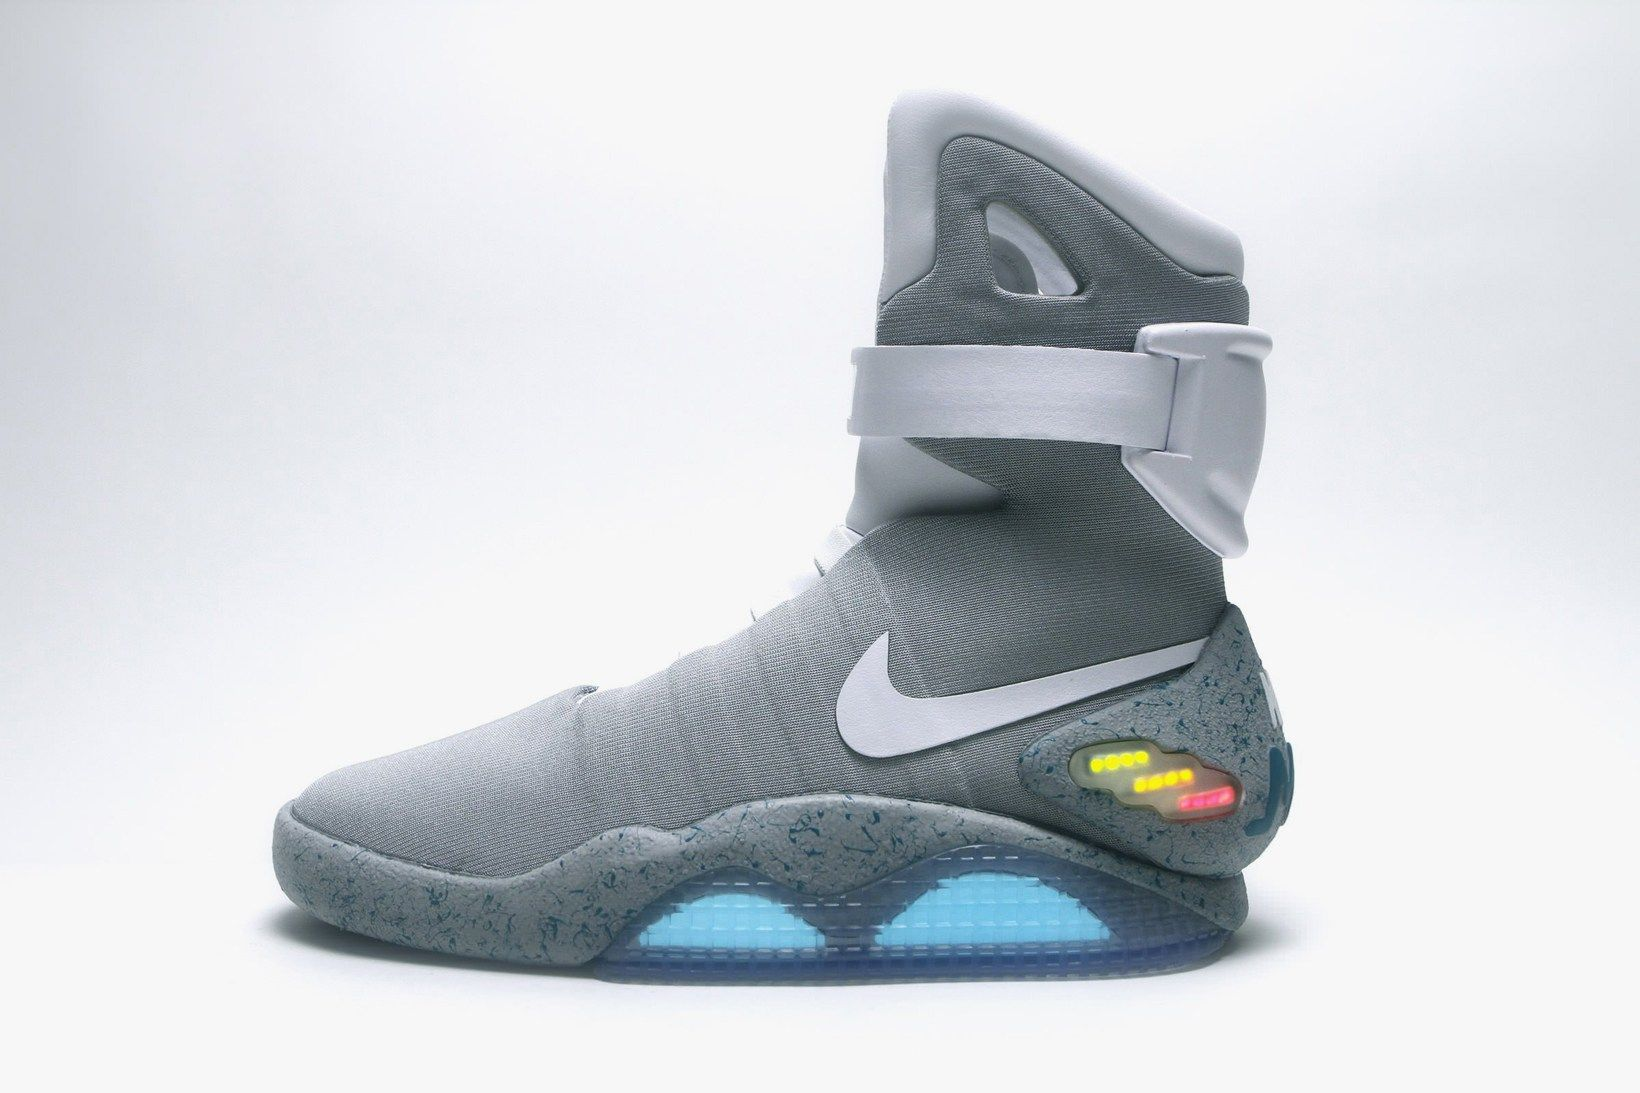 StockX Names the Most Expensive Sneakers of 2016 | Nike mag